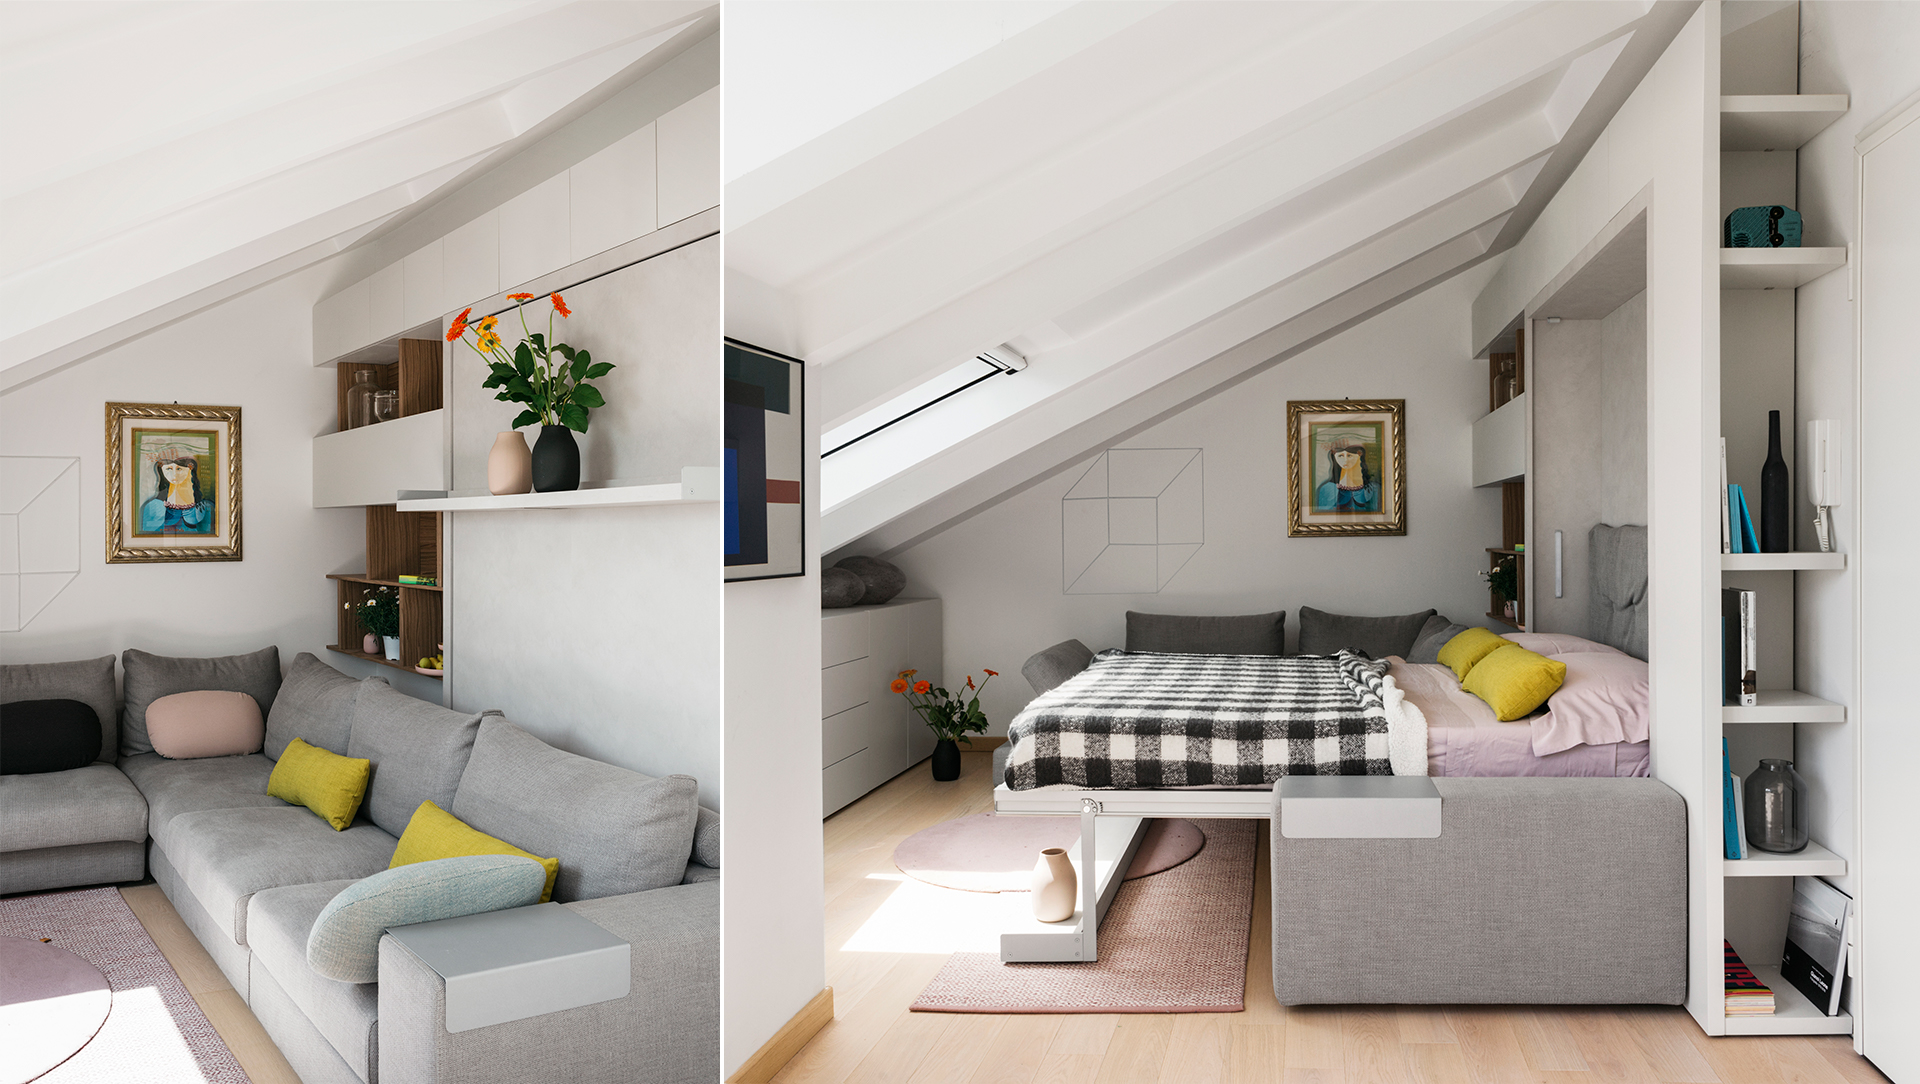 Roberta Colombo's Italian cottage is outfitted with a Tango Sectional wall bed, allowing this tiny space with a sloping roof to double as a living room and bedroom.